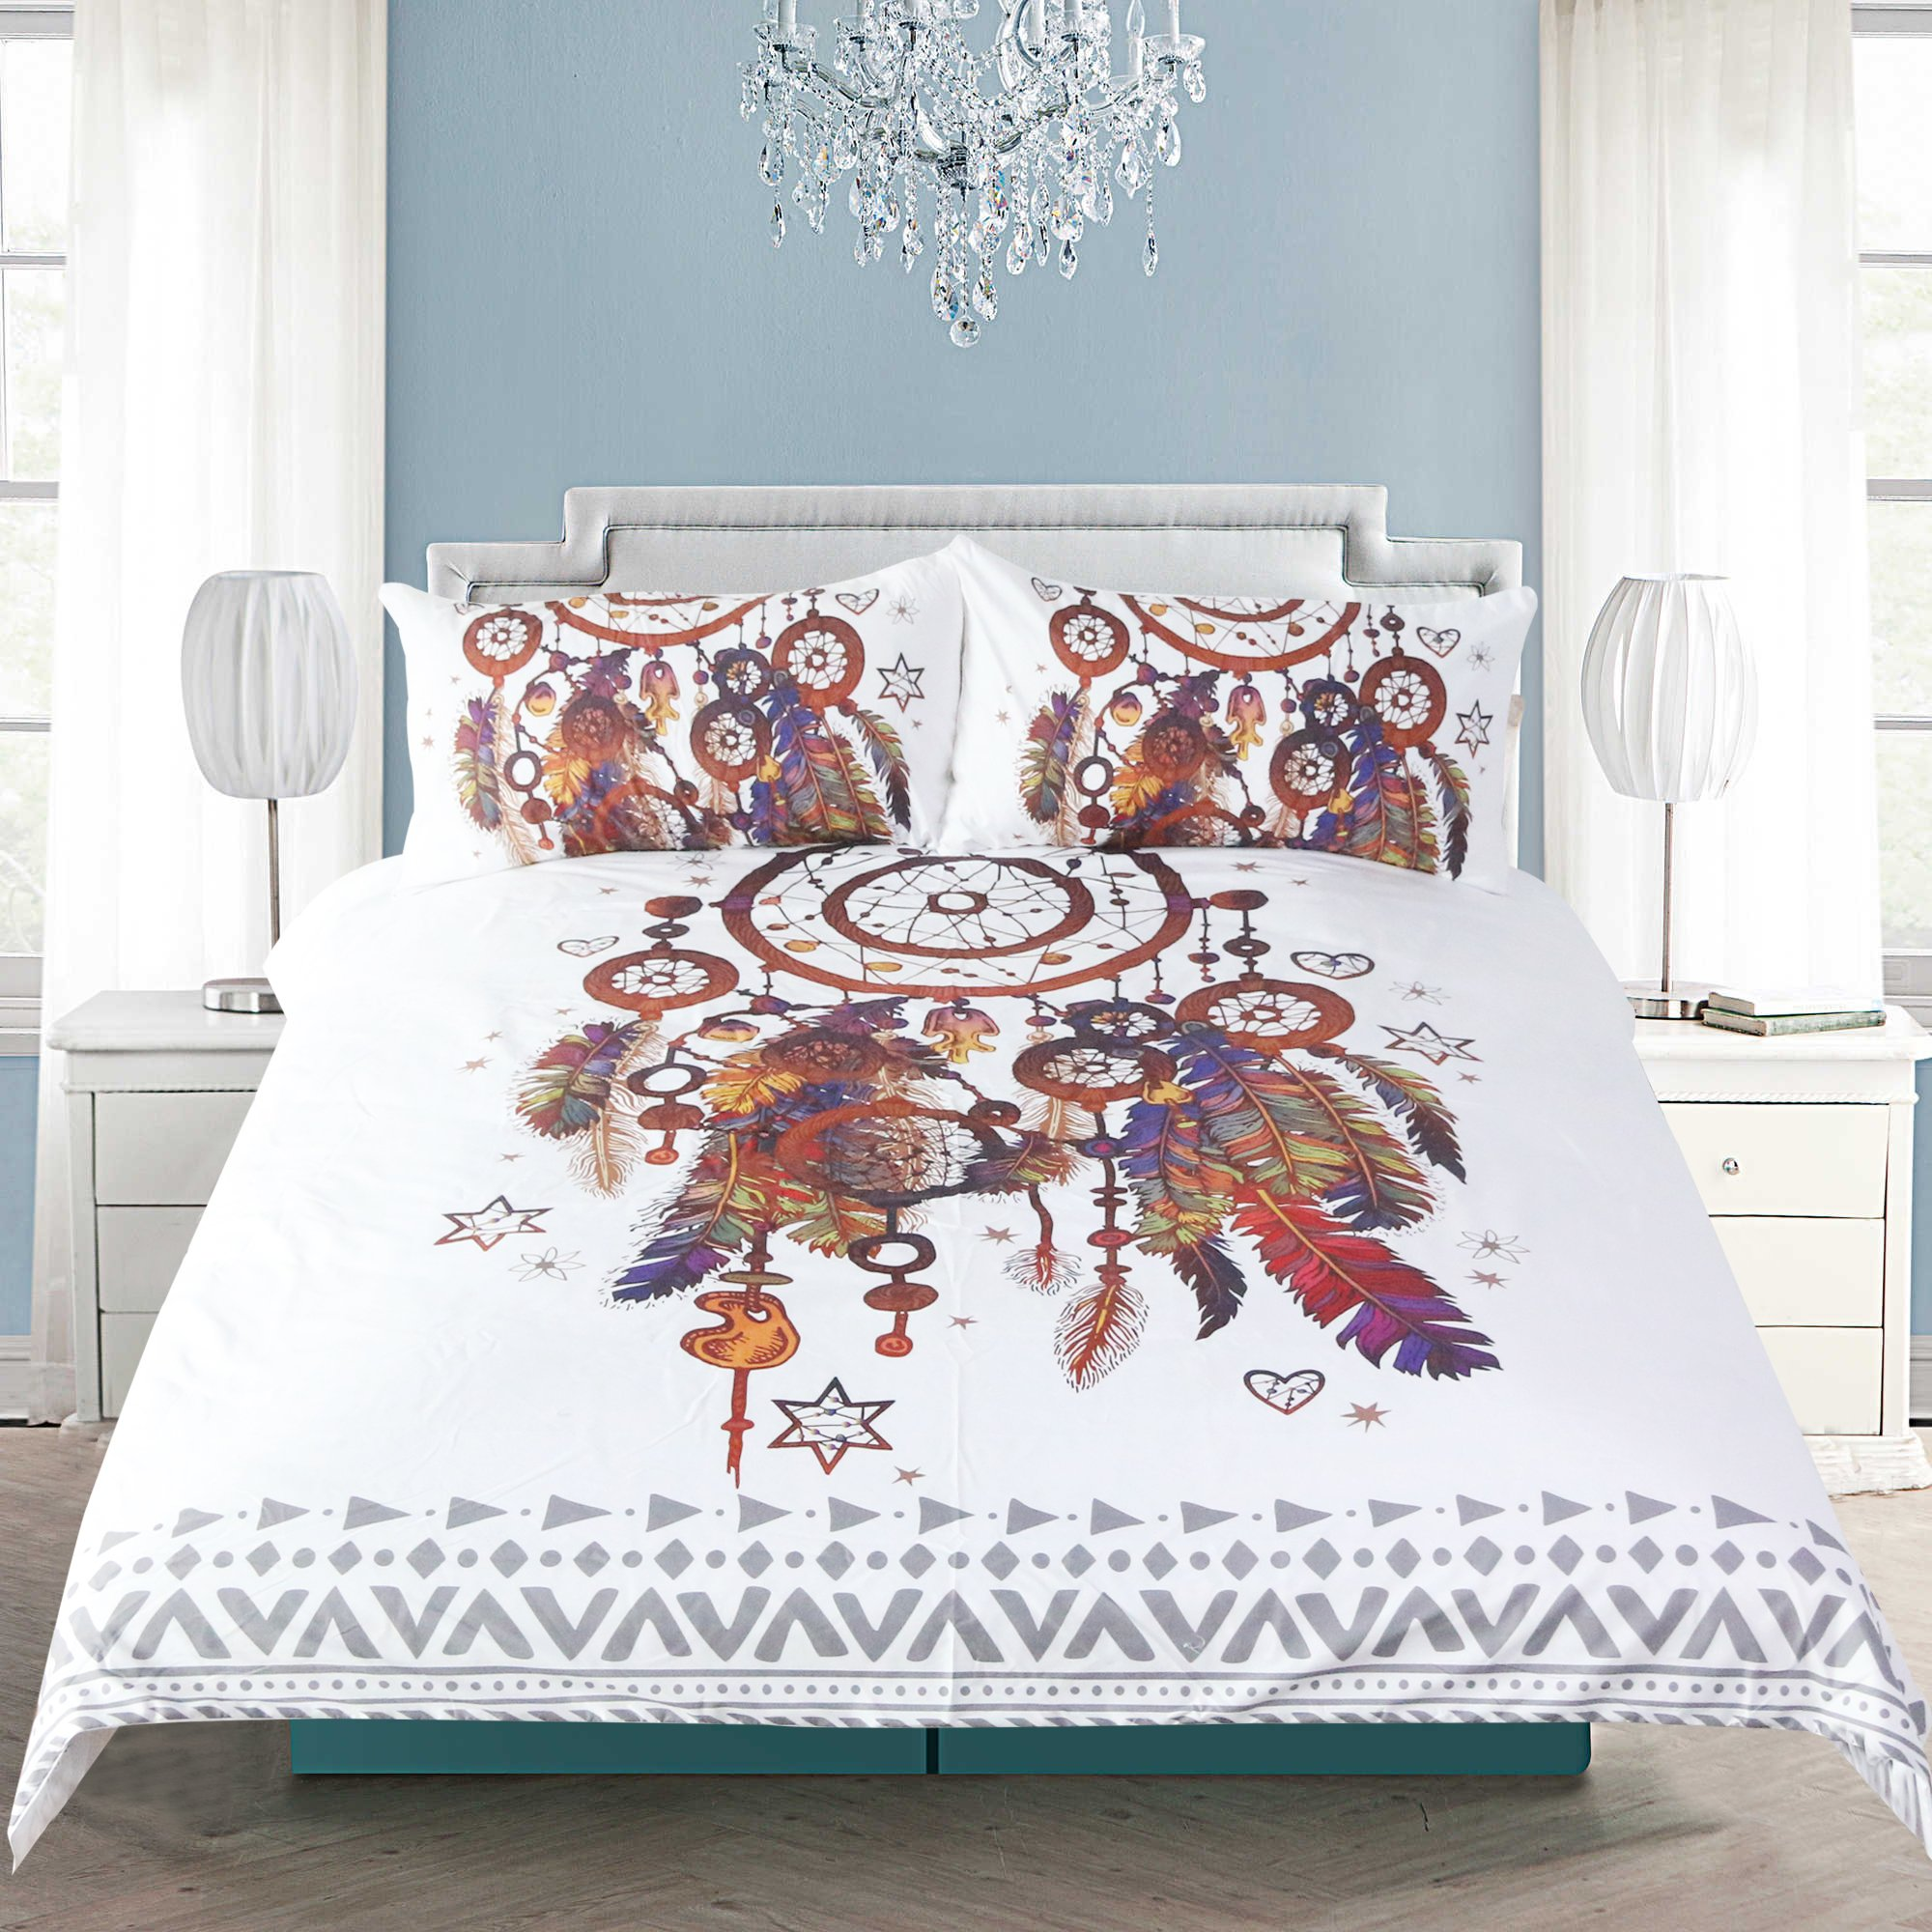 Sleepwish Hippy Feather Dream Catcher Bedding Set India Ethnic Dreamcatcher Duvet Cover Boho Chic Duvet Cover (Queen)